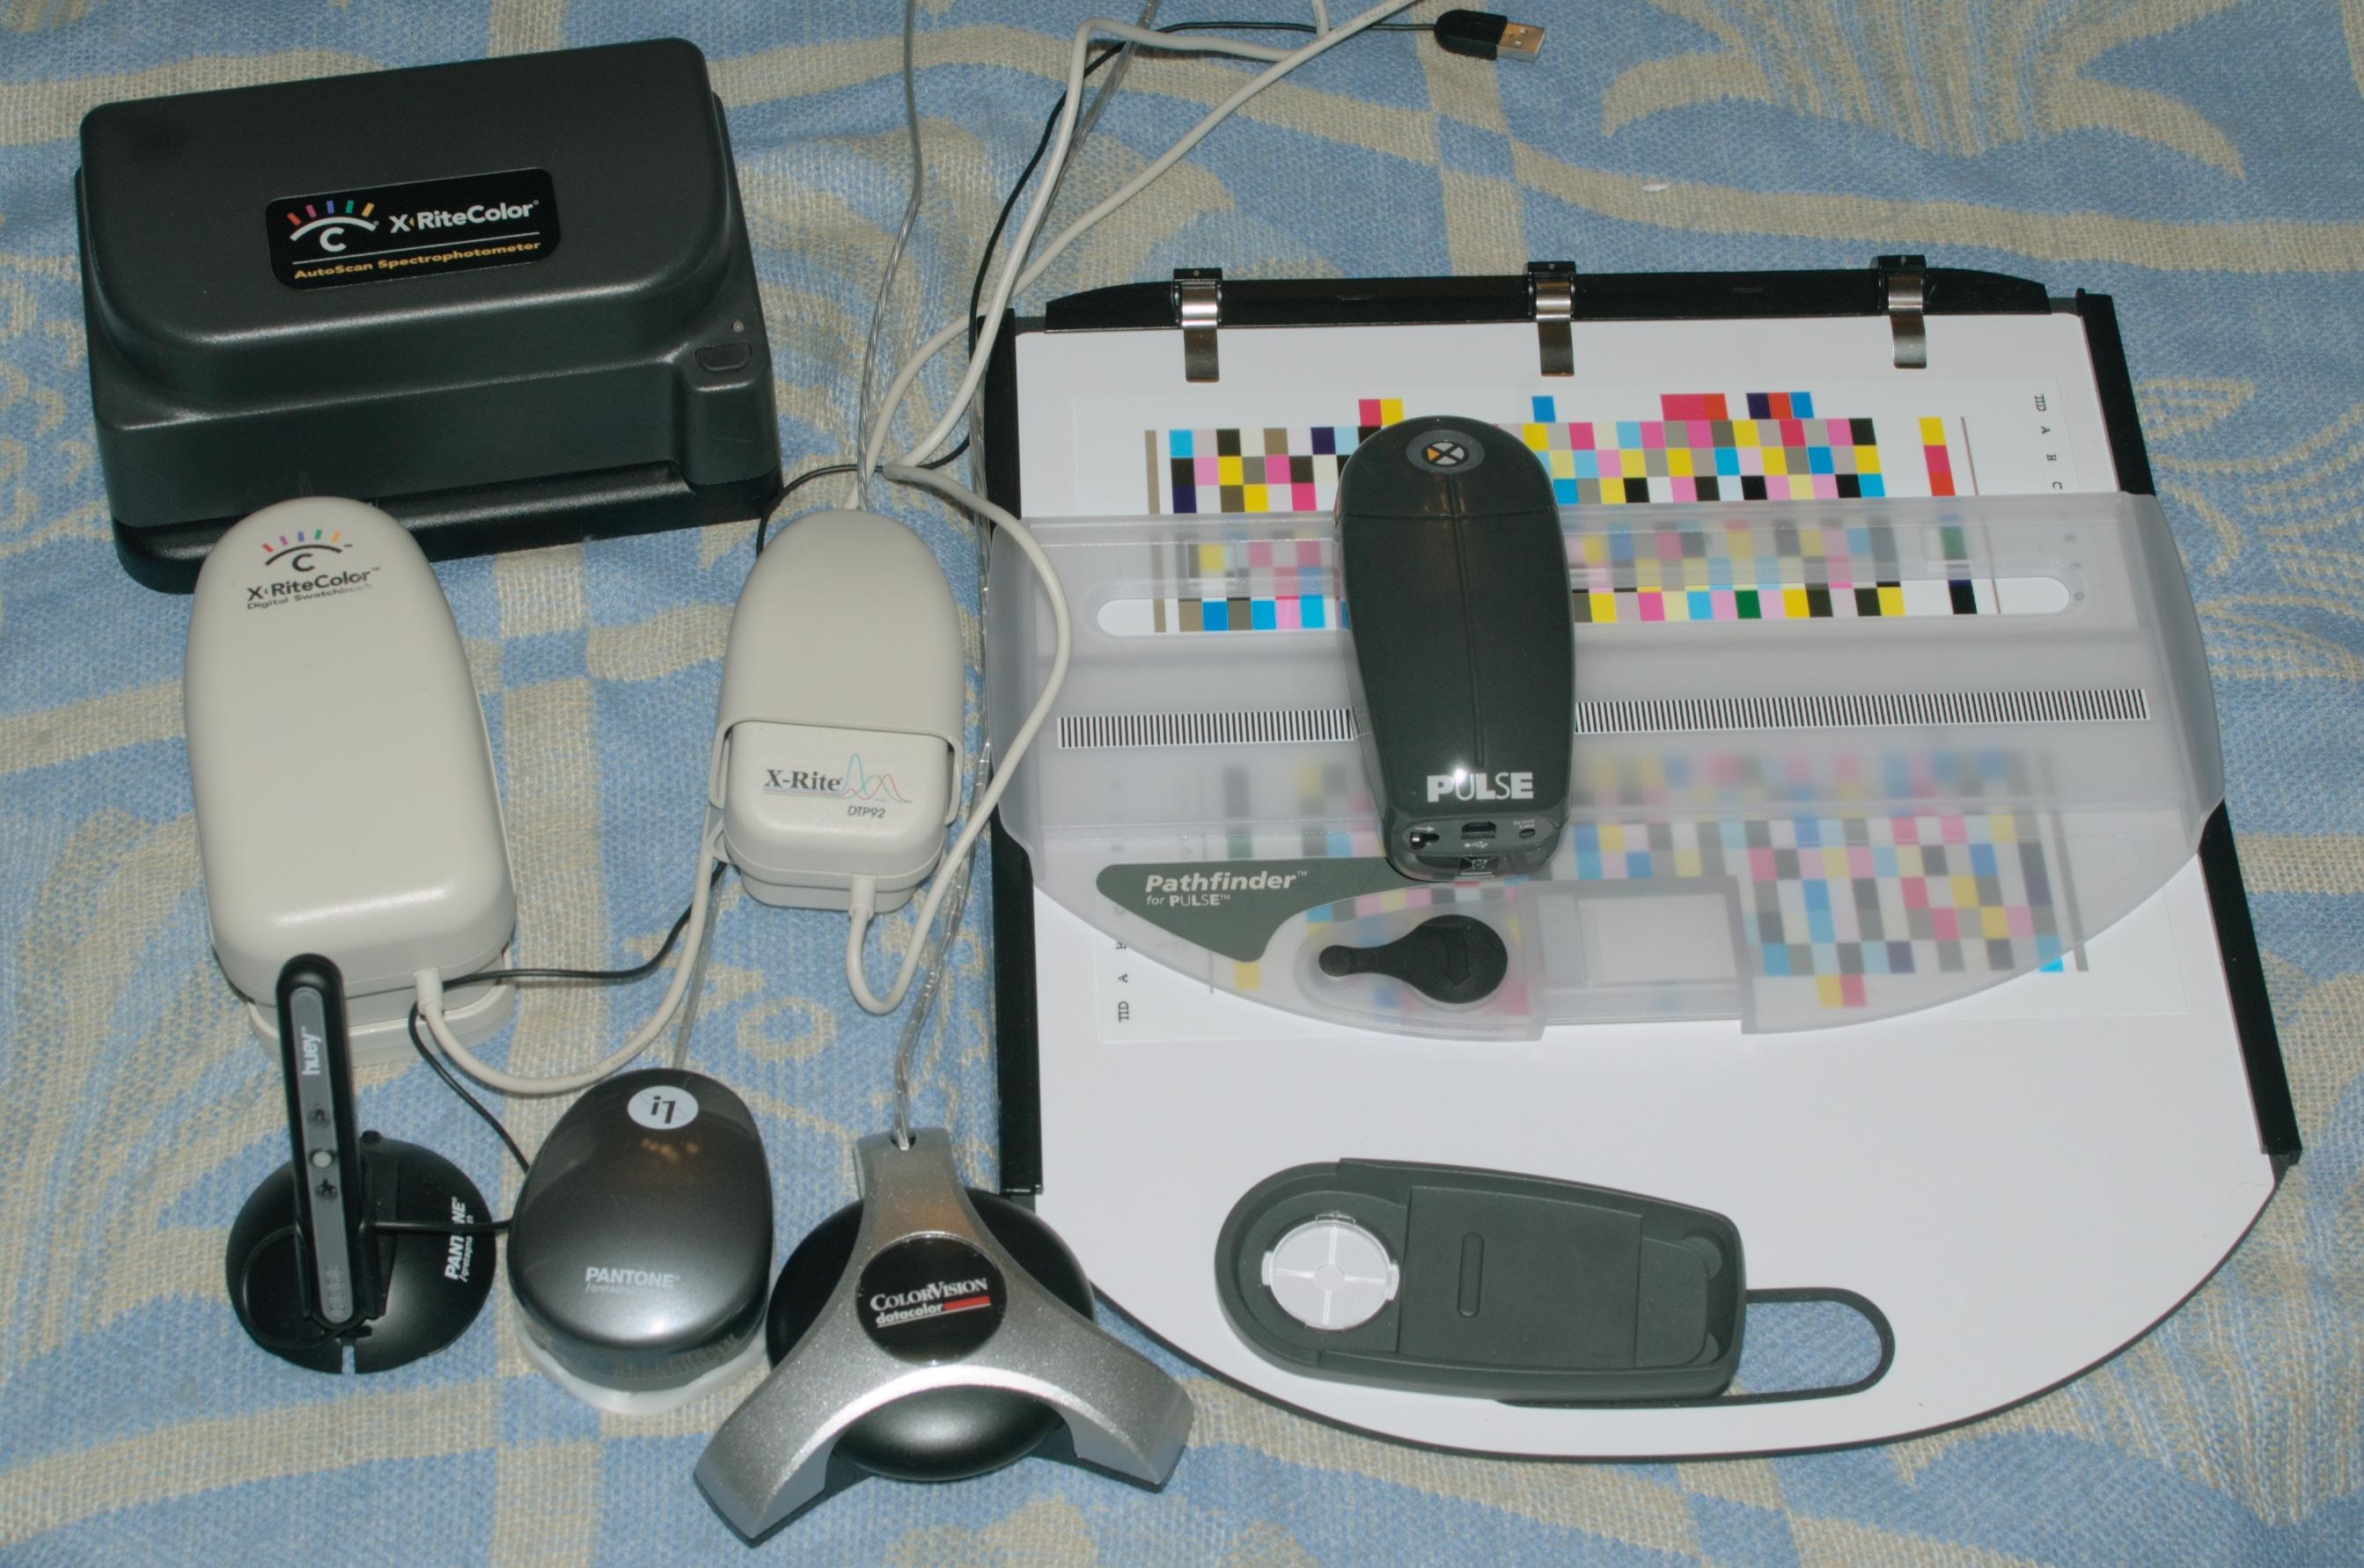 Spectrometers and colorimeters